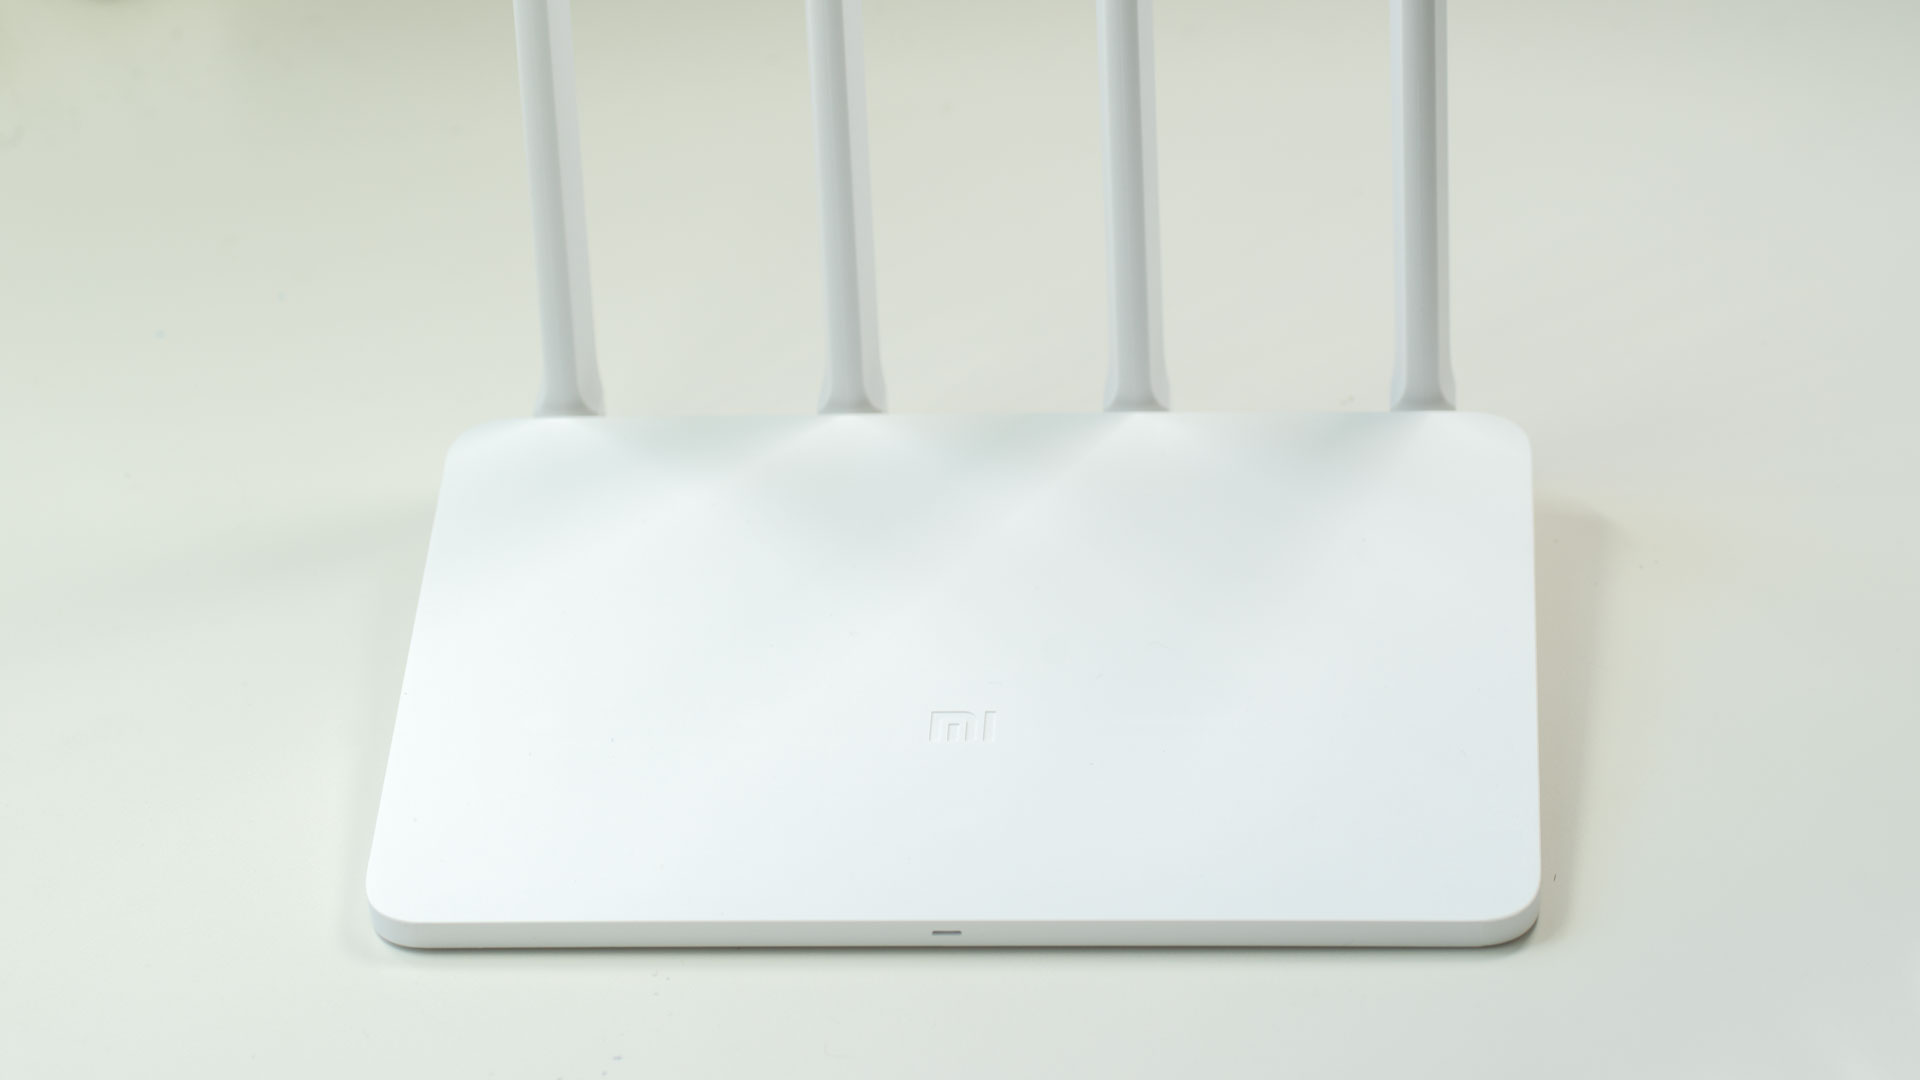 domestic xiaomi mi wifi router 3 review said